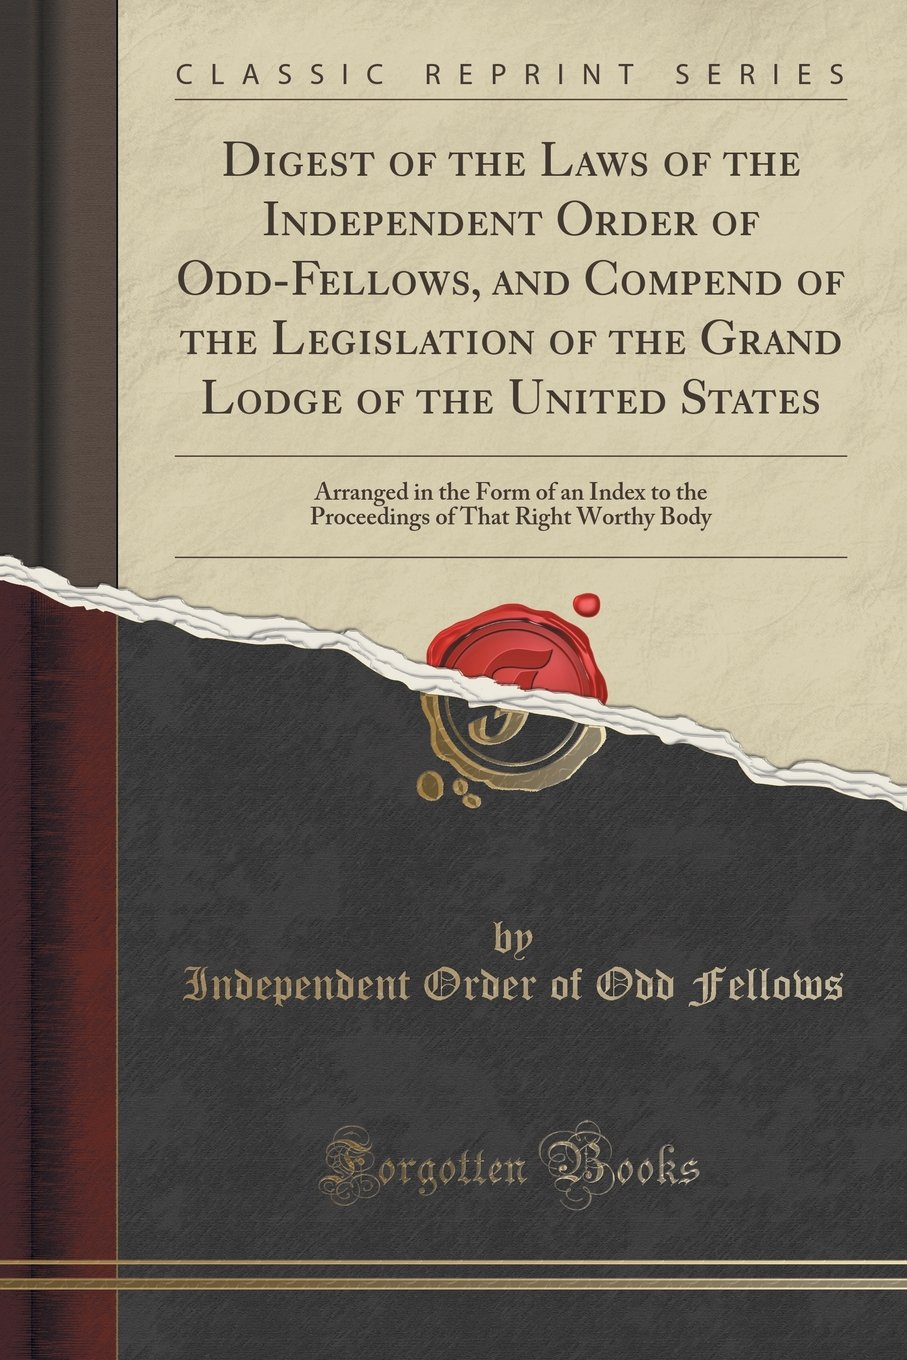 Download Digest of the Laws of the Independent Order of Odd-Fellows, and Compend of the Legislation of the Grand Lodge of the United States: Arranged in the ... of That Right Worthy Body (Classic Reprint) pdf epub